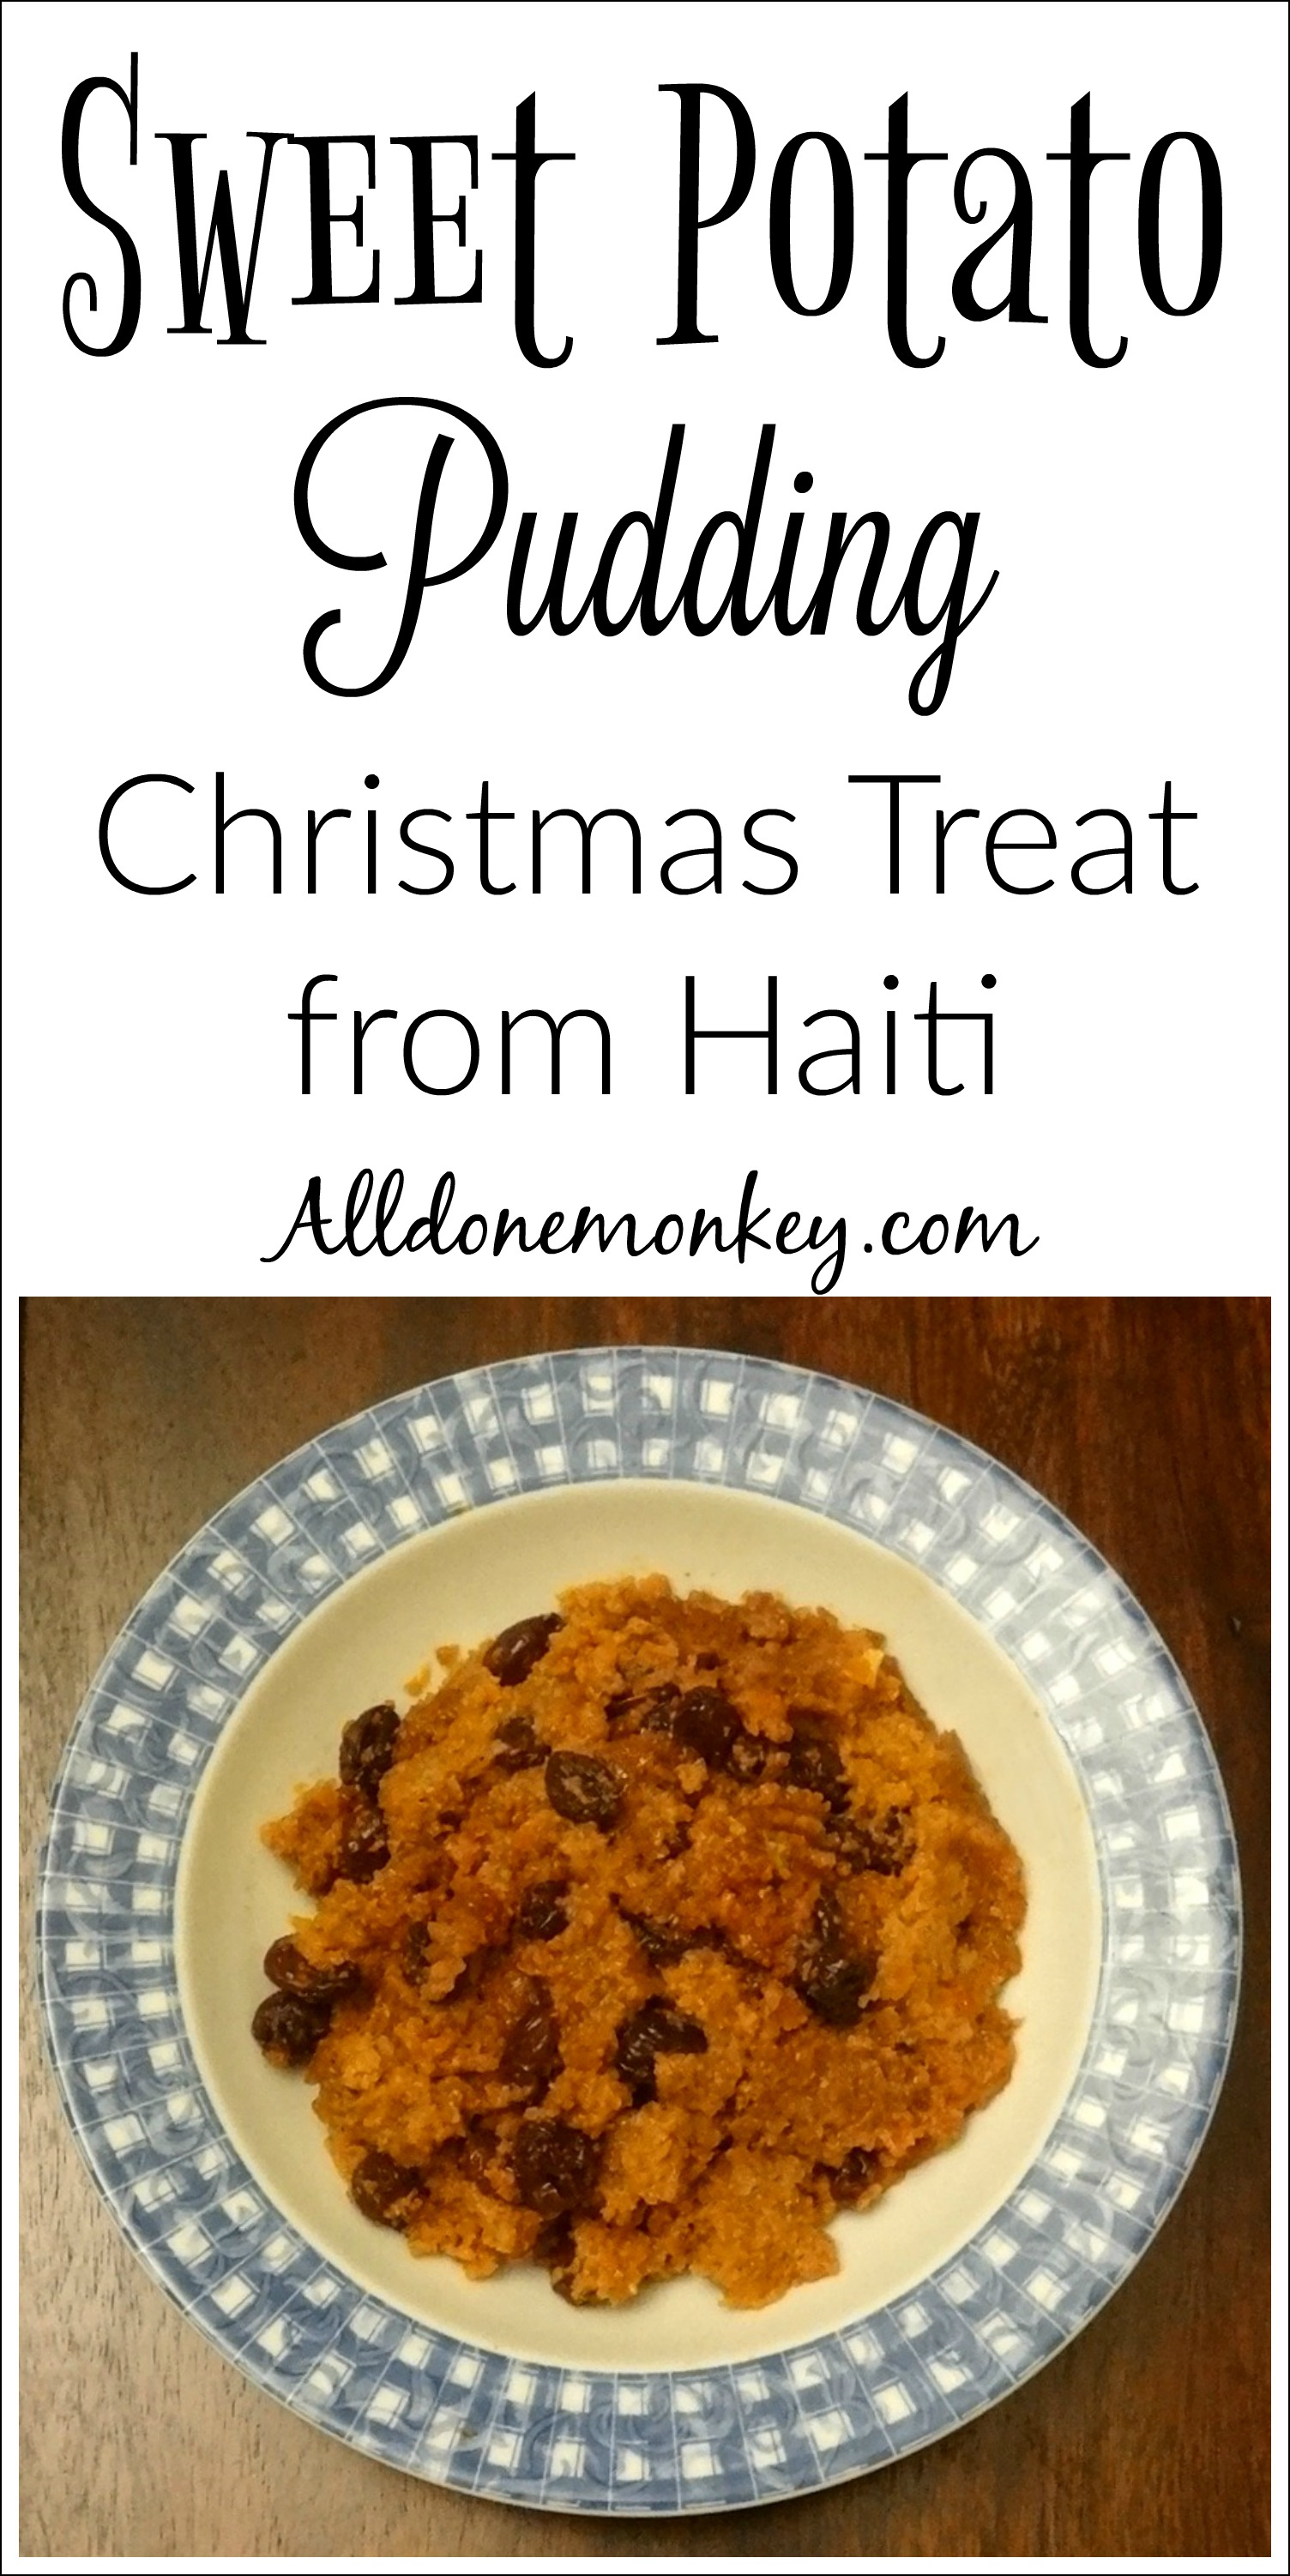 Haiti Christmas Treat: Sweet Potato Pudding | Alldonemonkey.com